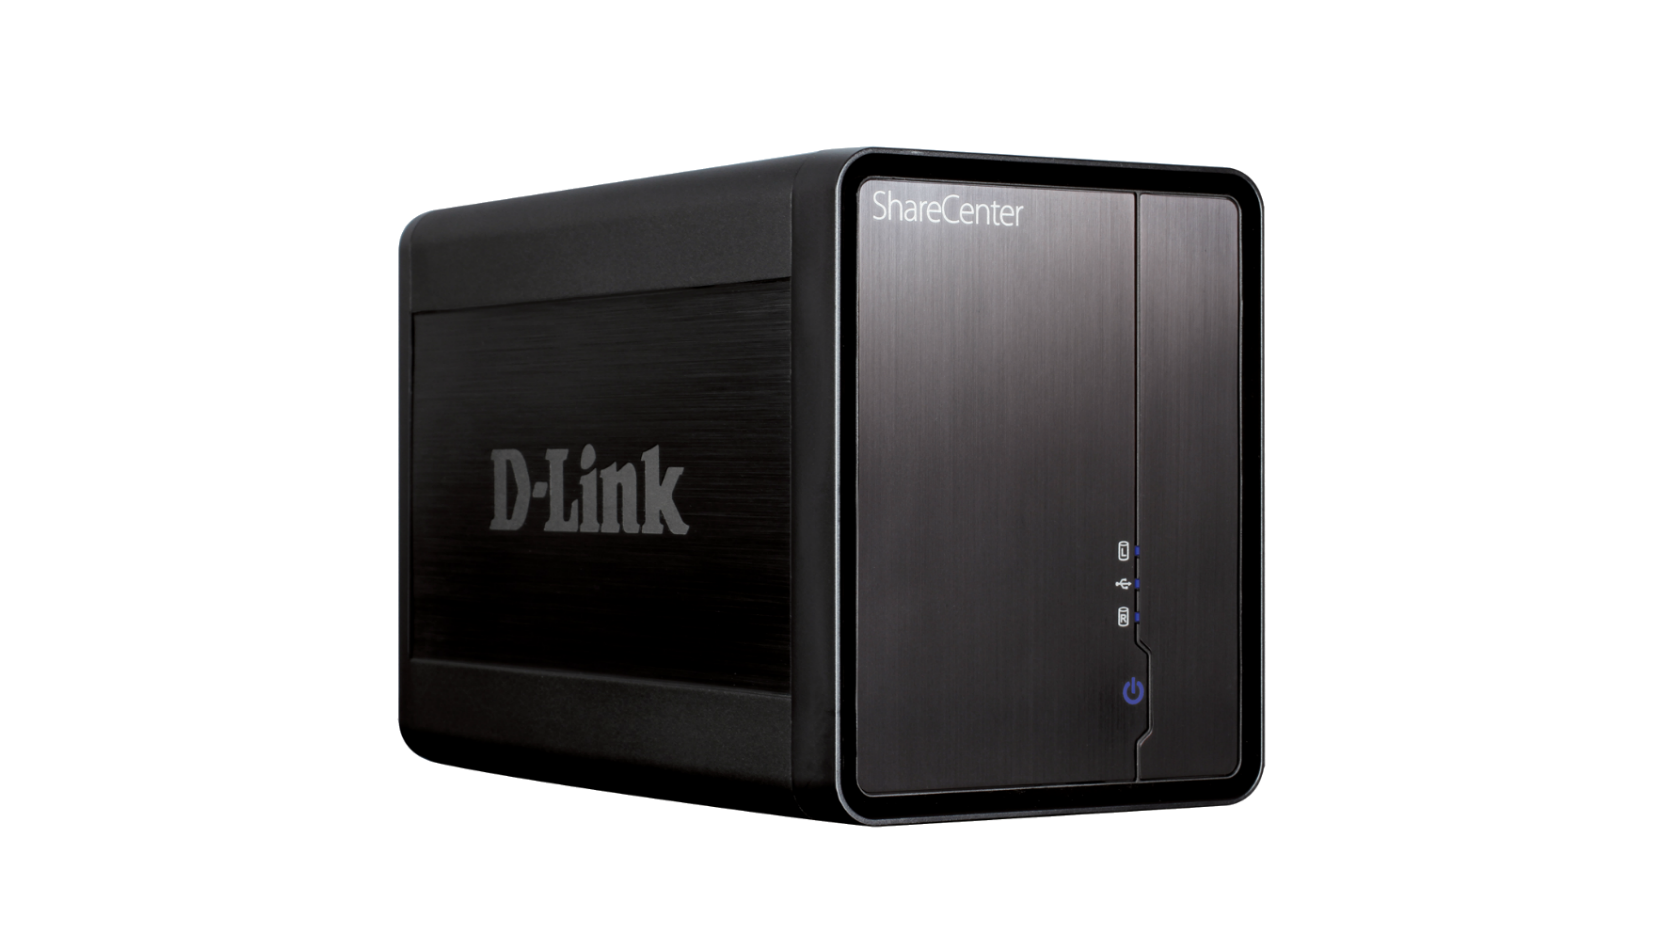 D-Link DNS-325 NAS Windows 8 X64